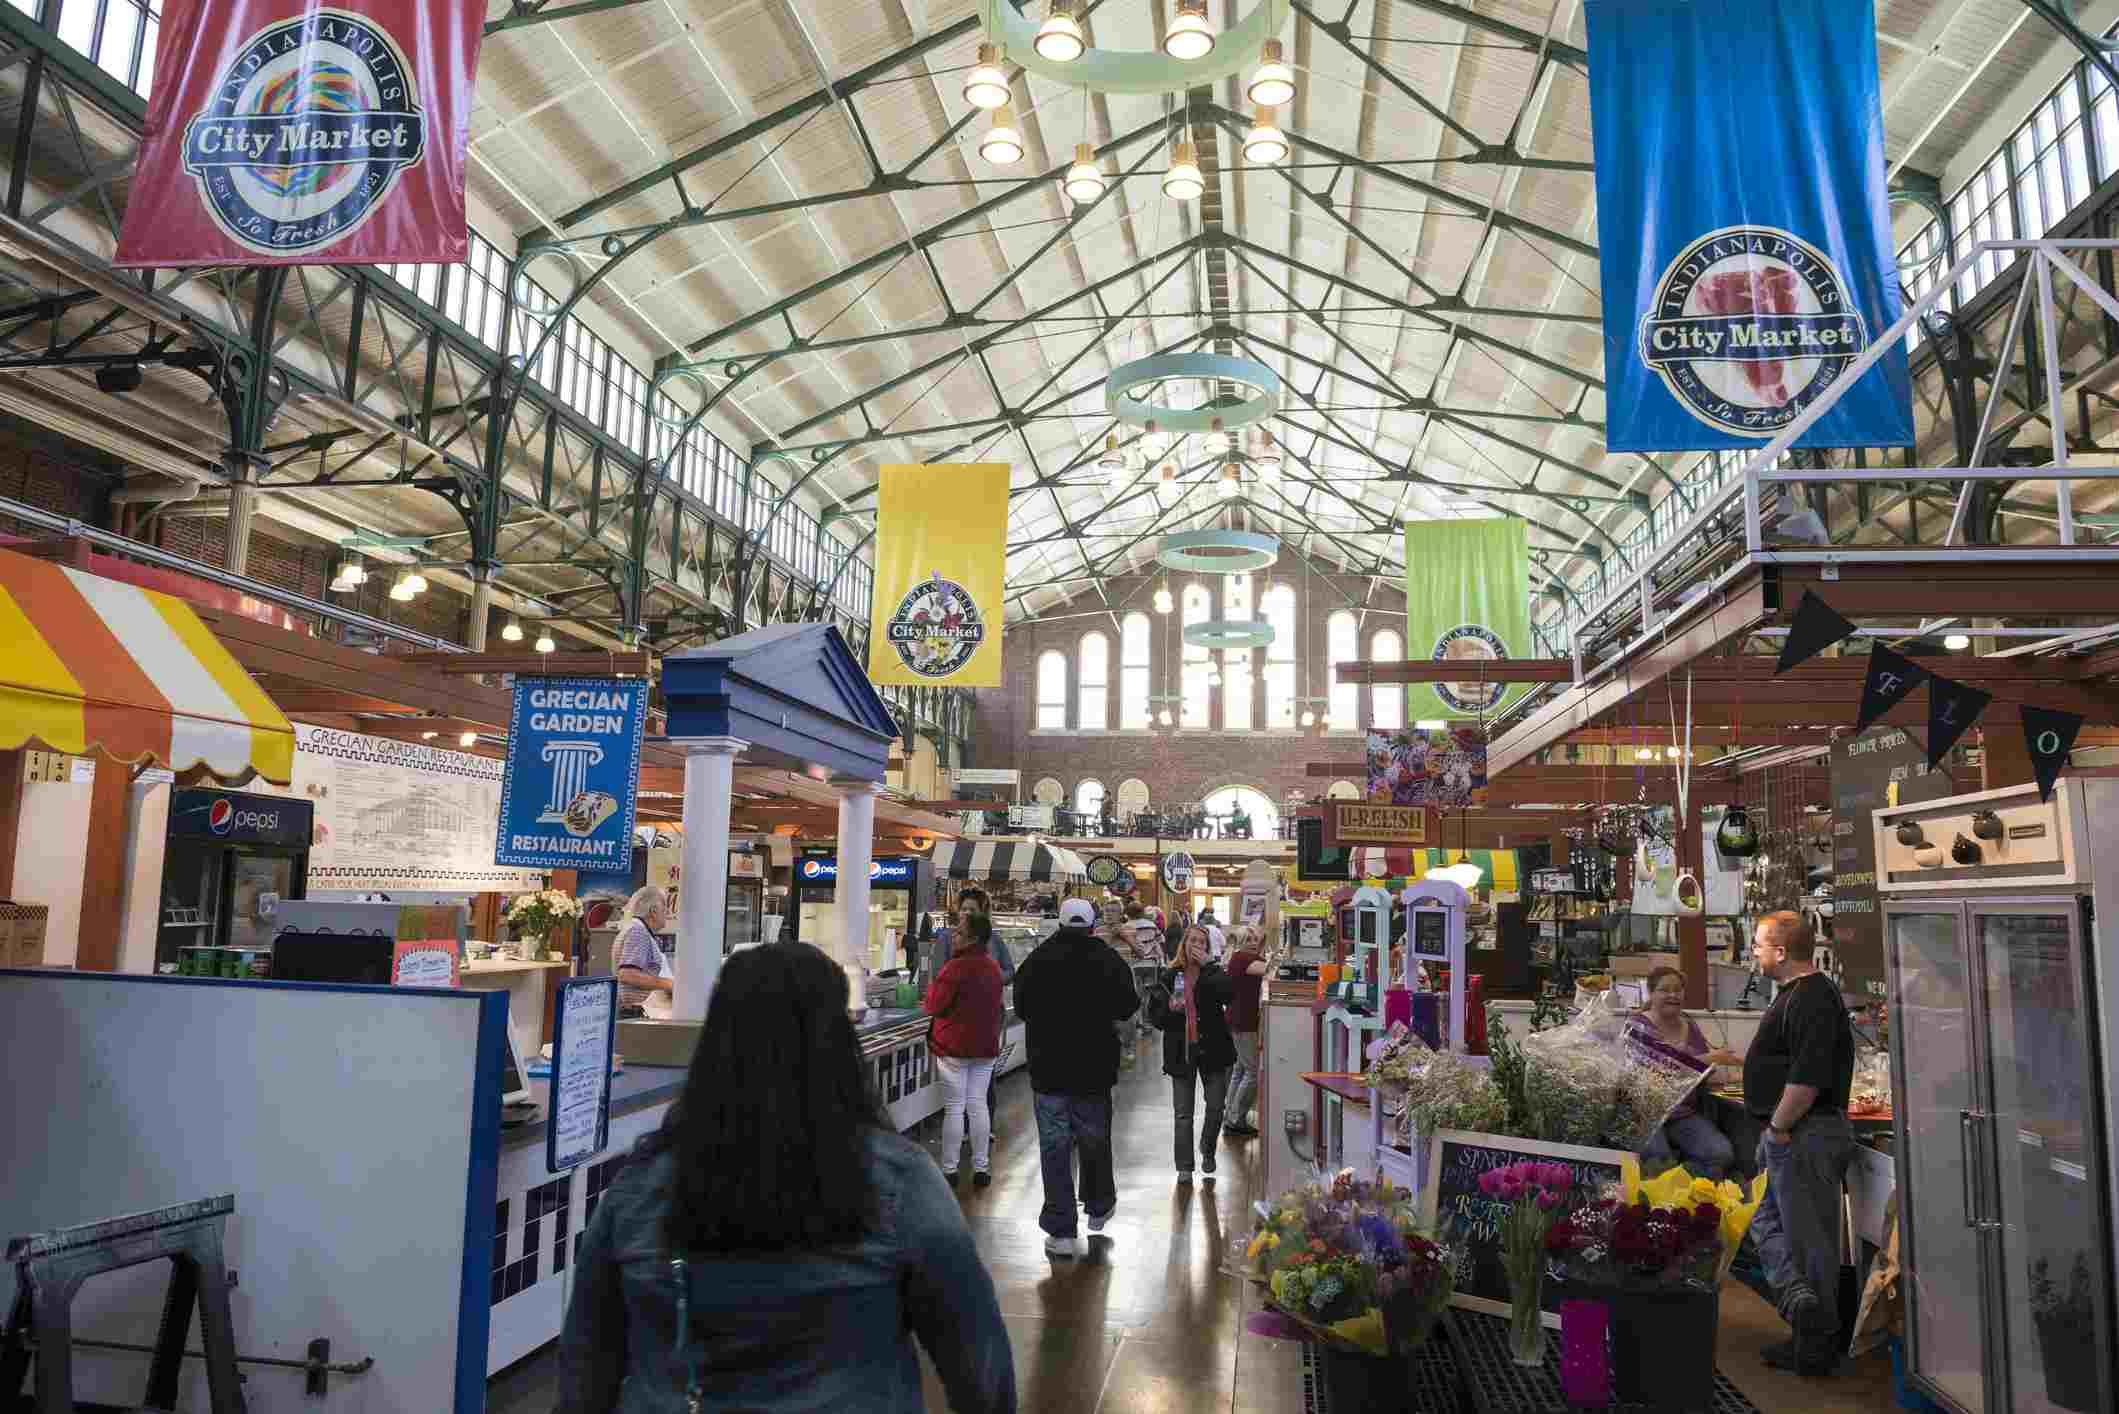 City Market in Indianapolis, Indiana